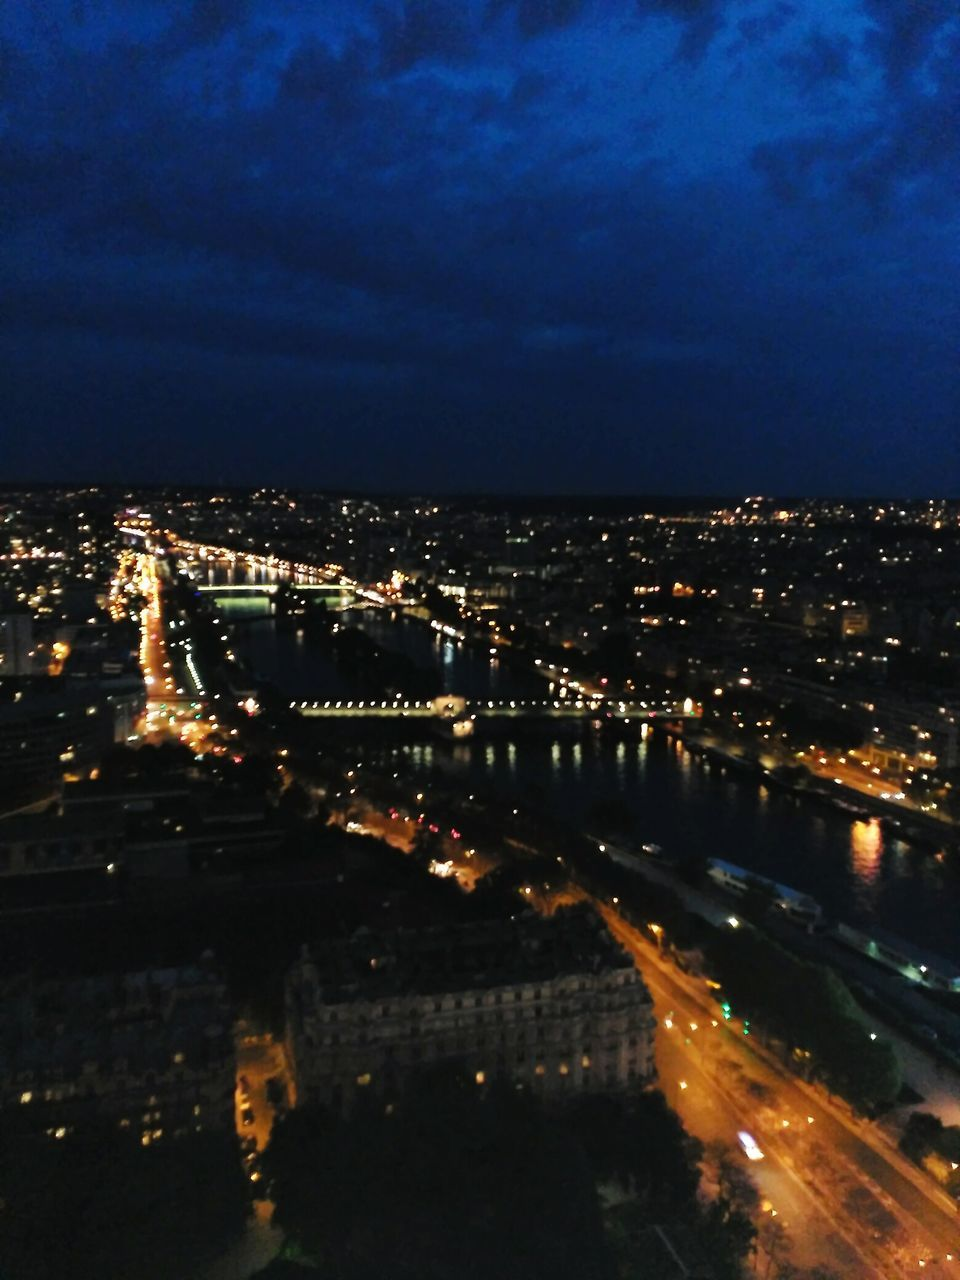 illuminated, city, night, cityscape, architecture, connection, no people, modern, built structure, building exterior, outdoors, chain bridge, sky